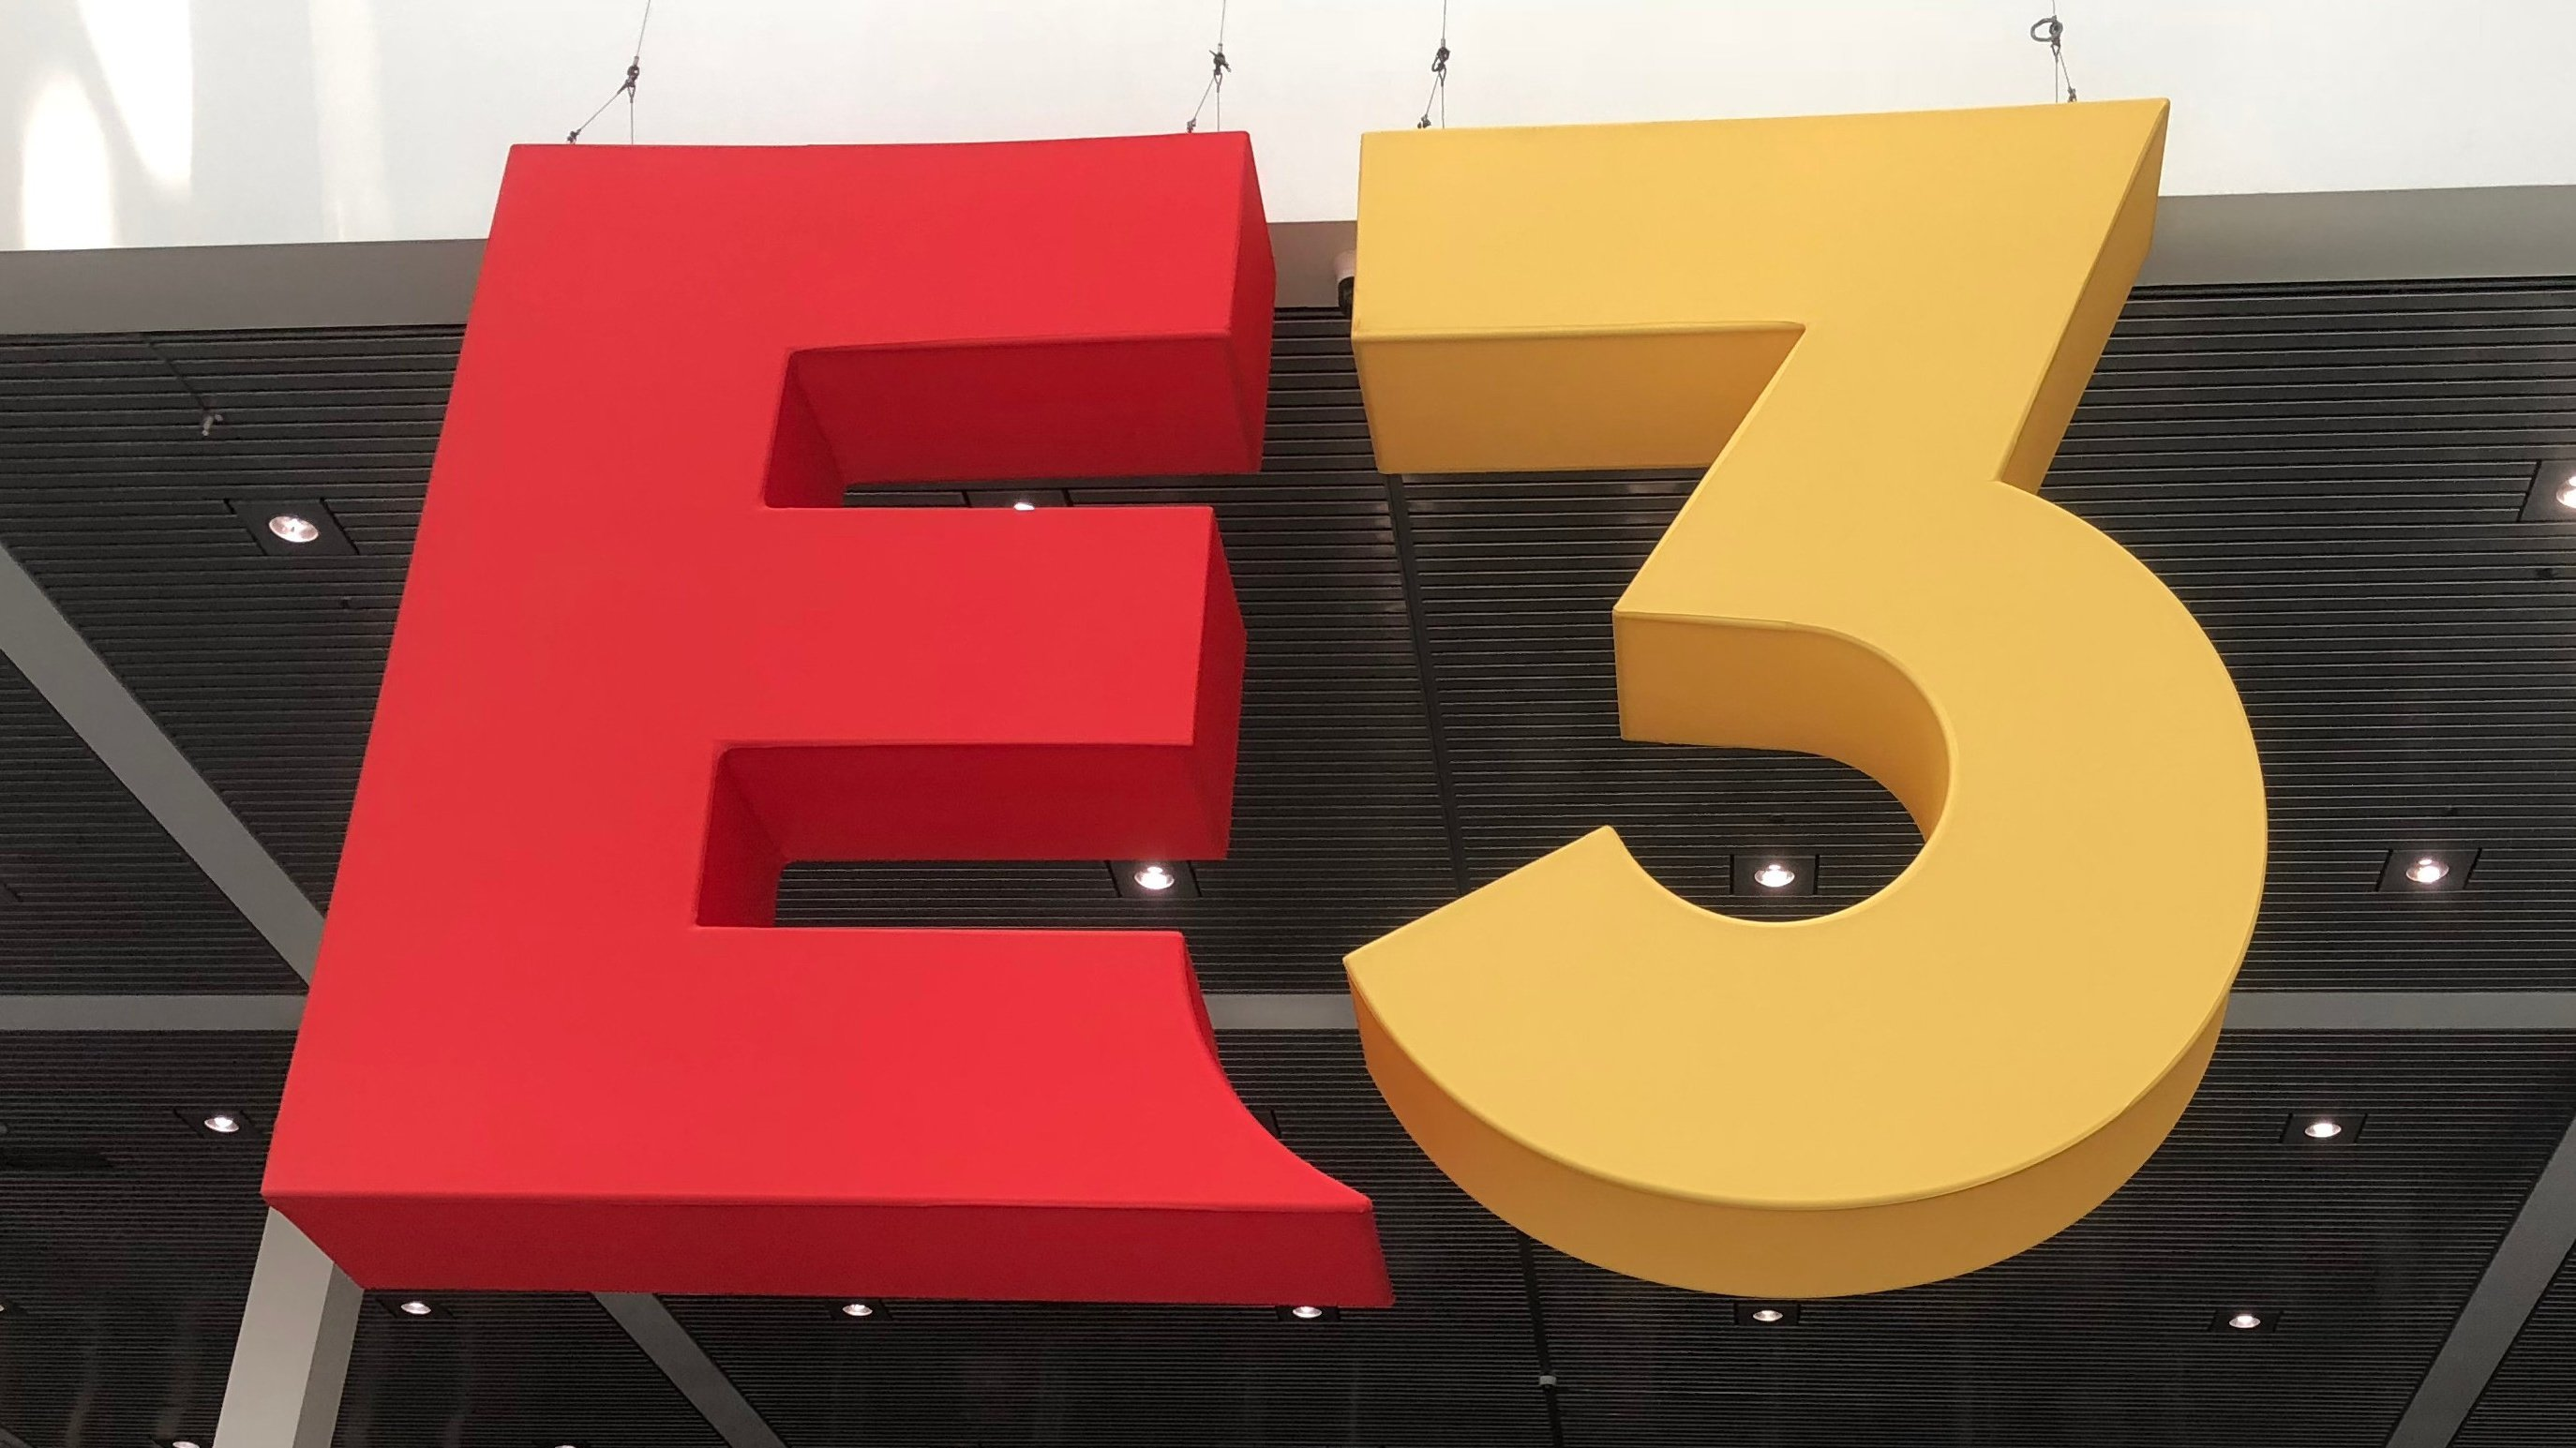 IGN's Summer Of Gaming Event To Fill E3 2020 Void